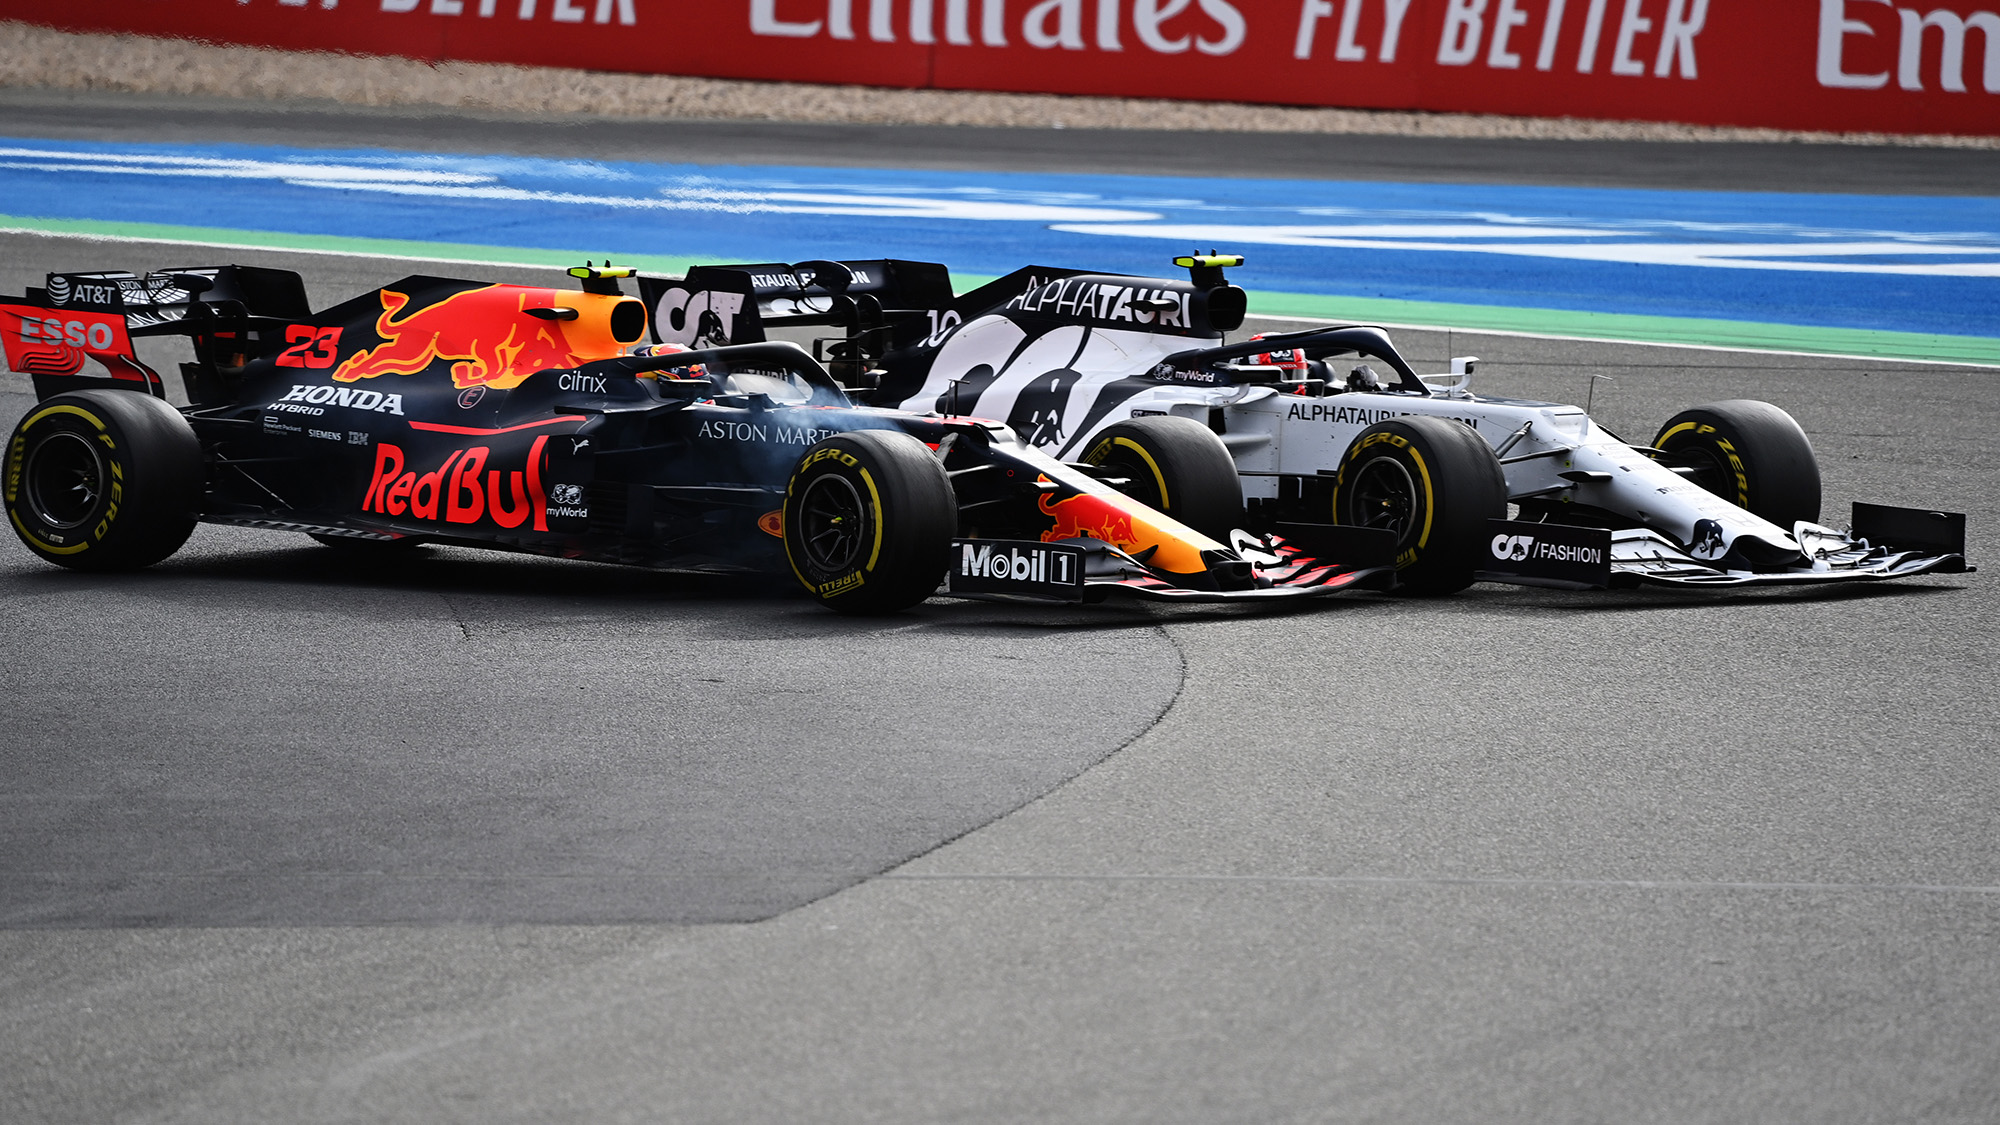 Alex Albon clashes with Pierre Gasly at the Nurburgring during the 2020 F1 Eifel Grand Prix